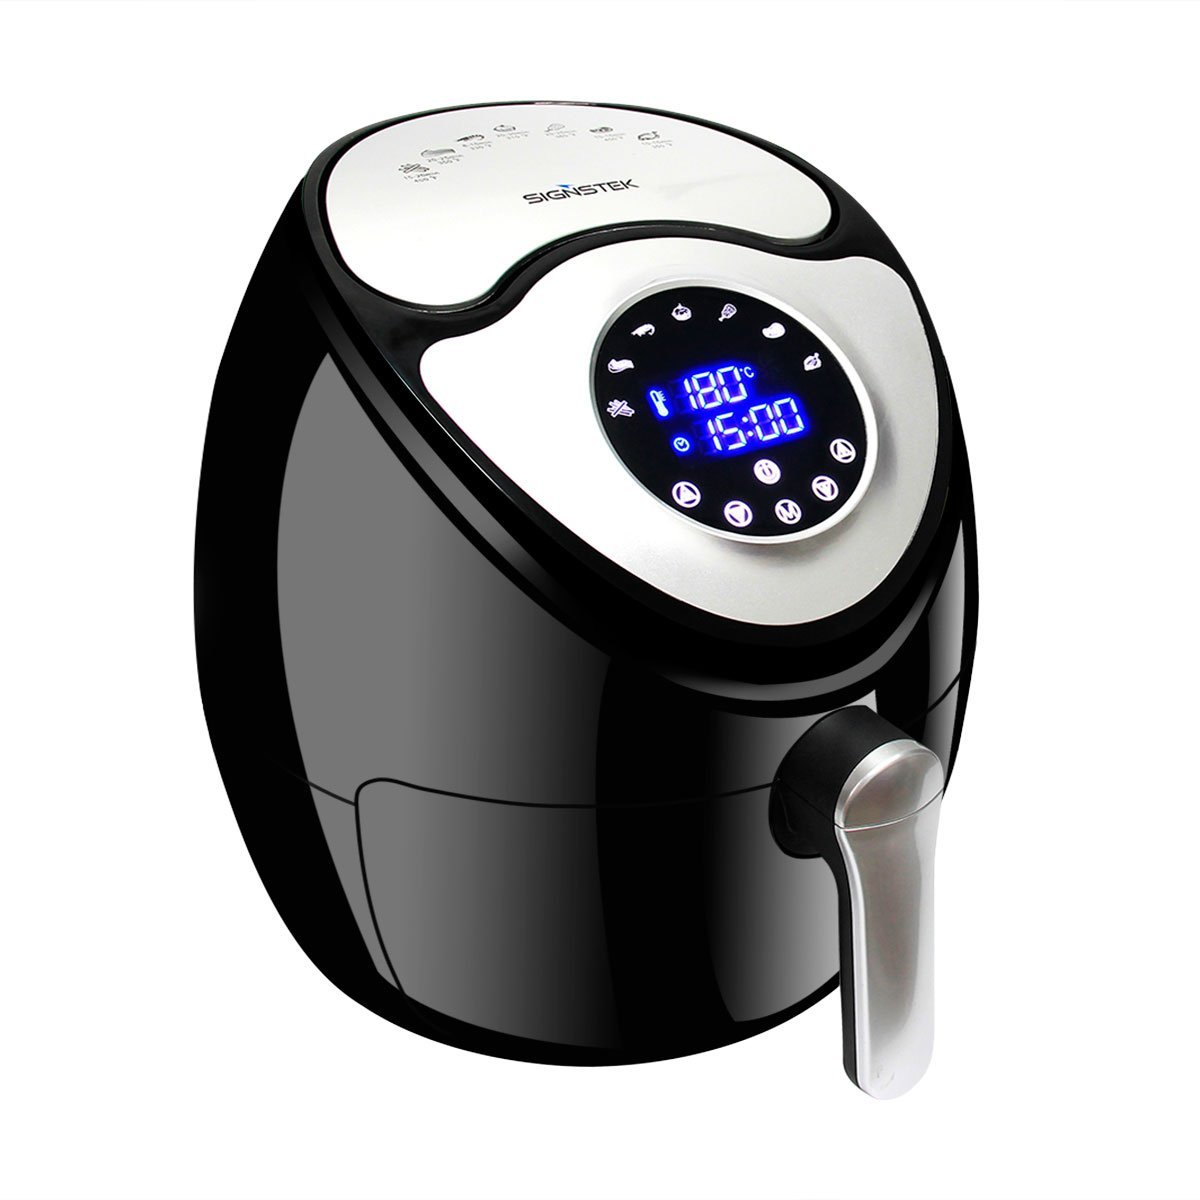 Signstek 5.9QT 1700W Digital Touch Screen Control Air Fryer for Low Fat Oil Health Food with Timer & Temperature Controls, Comes with Recipes and Cleaning Brush